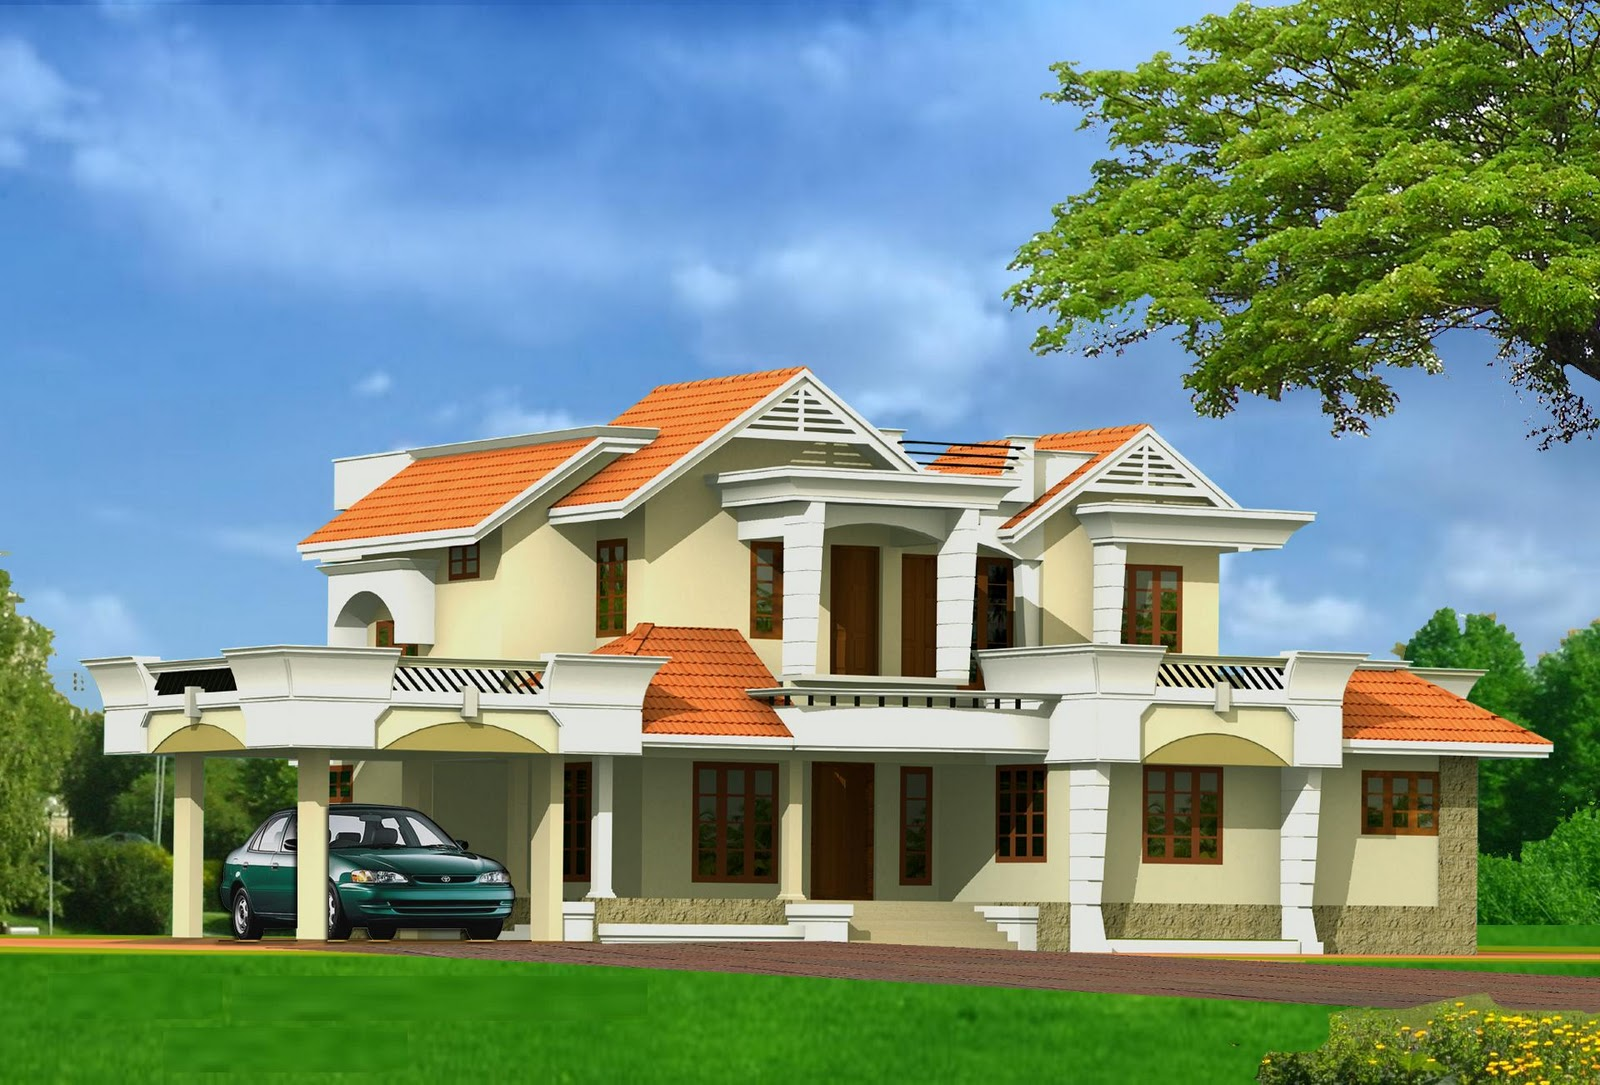 House plans and design architectural designs of for Residential house design